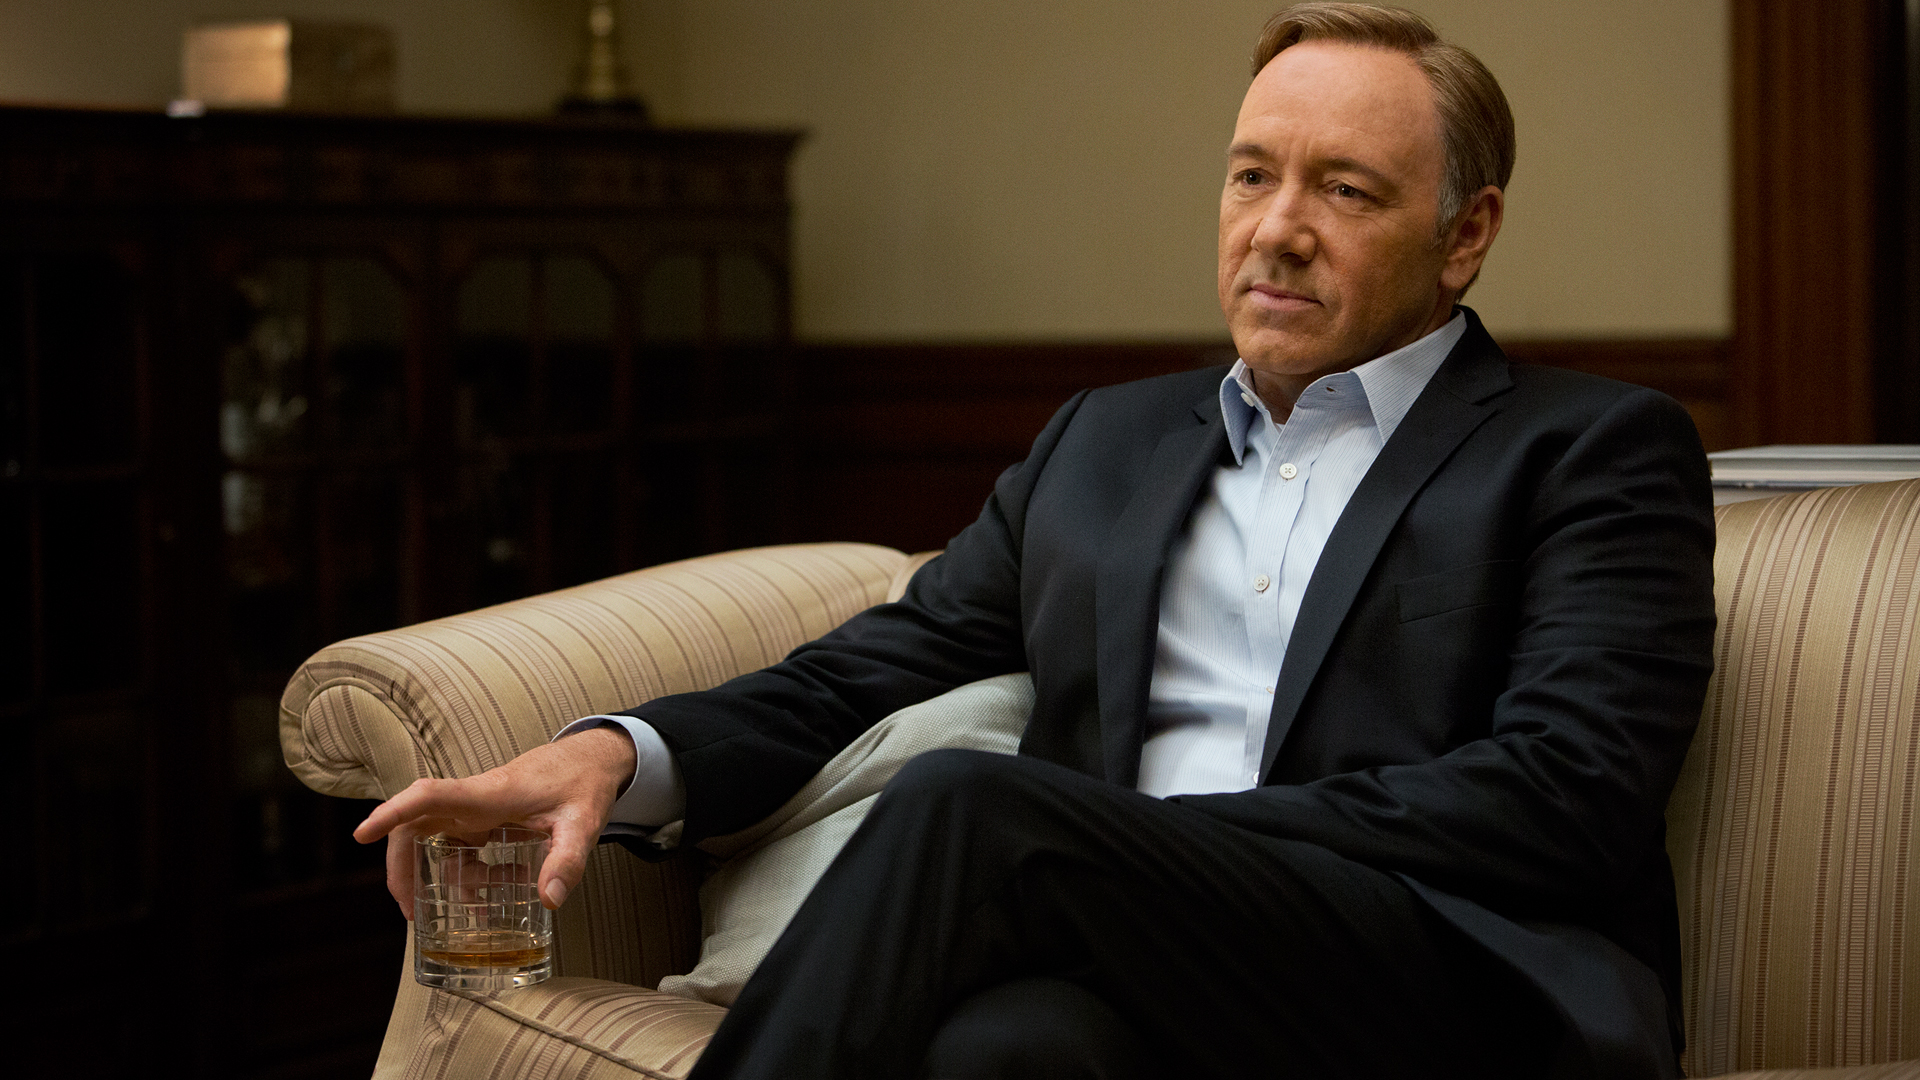 kevin spacey wallpaper 57573